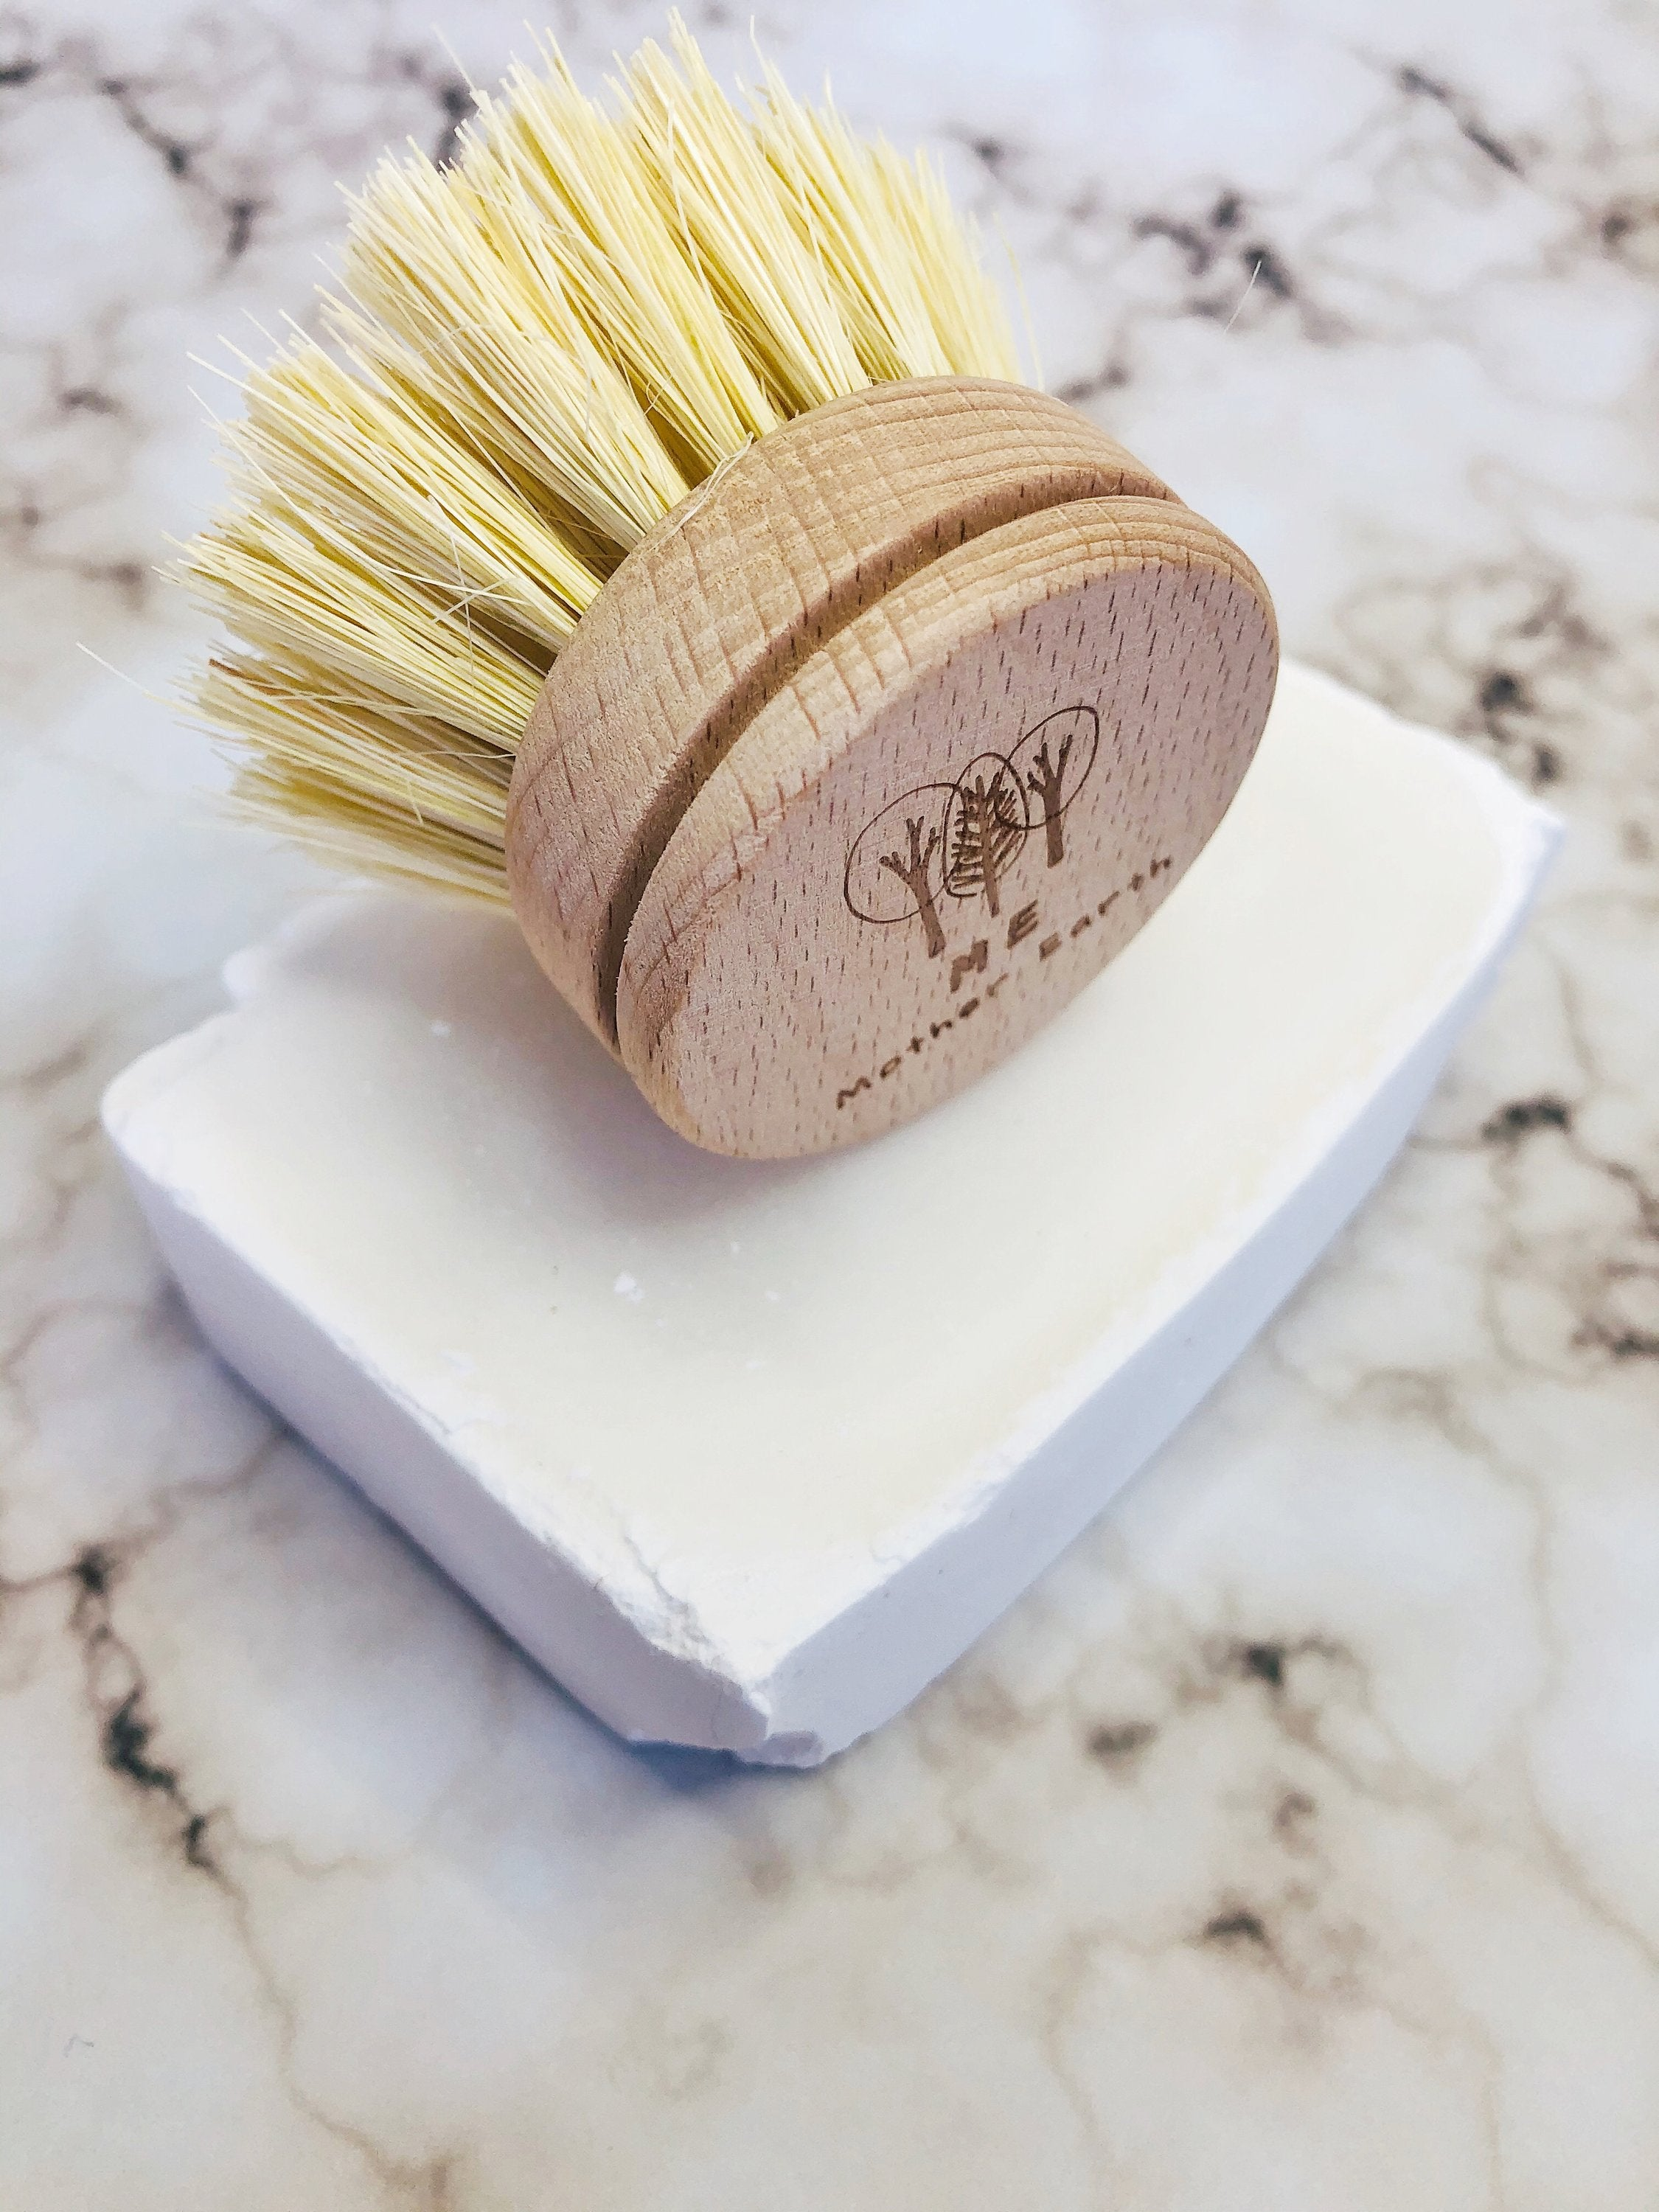 brush replacement head on white bar of soap